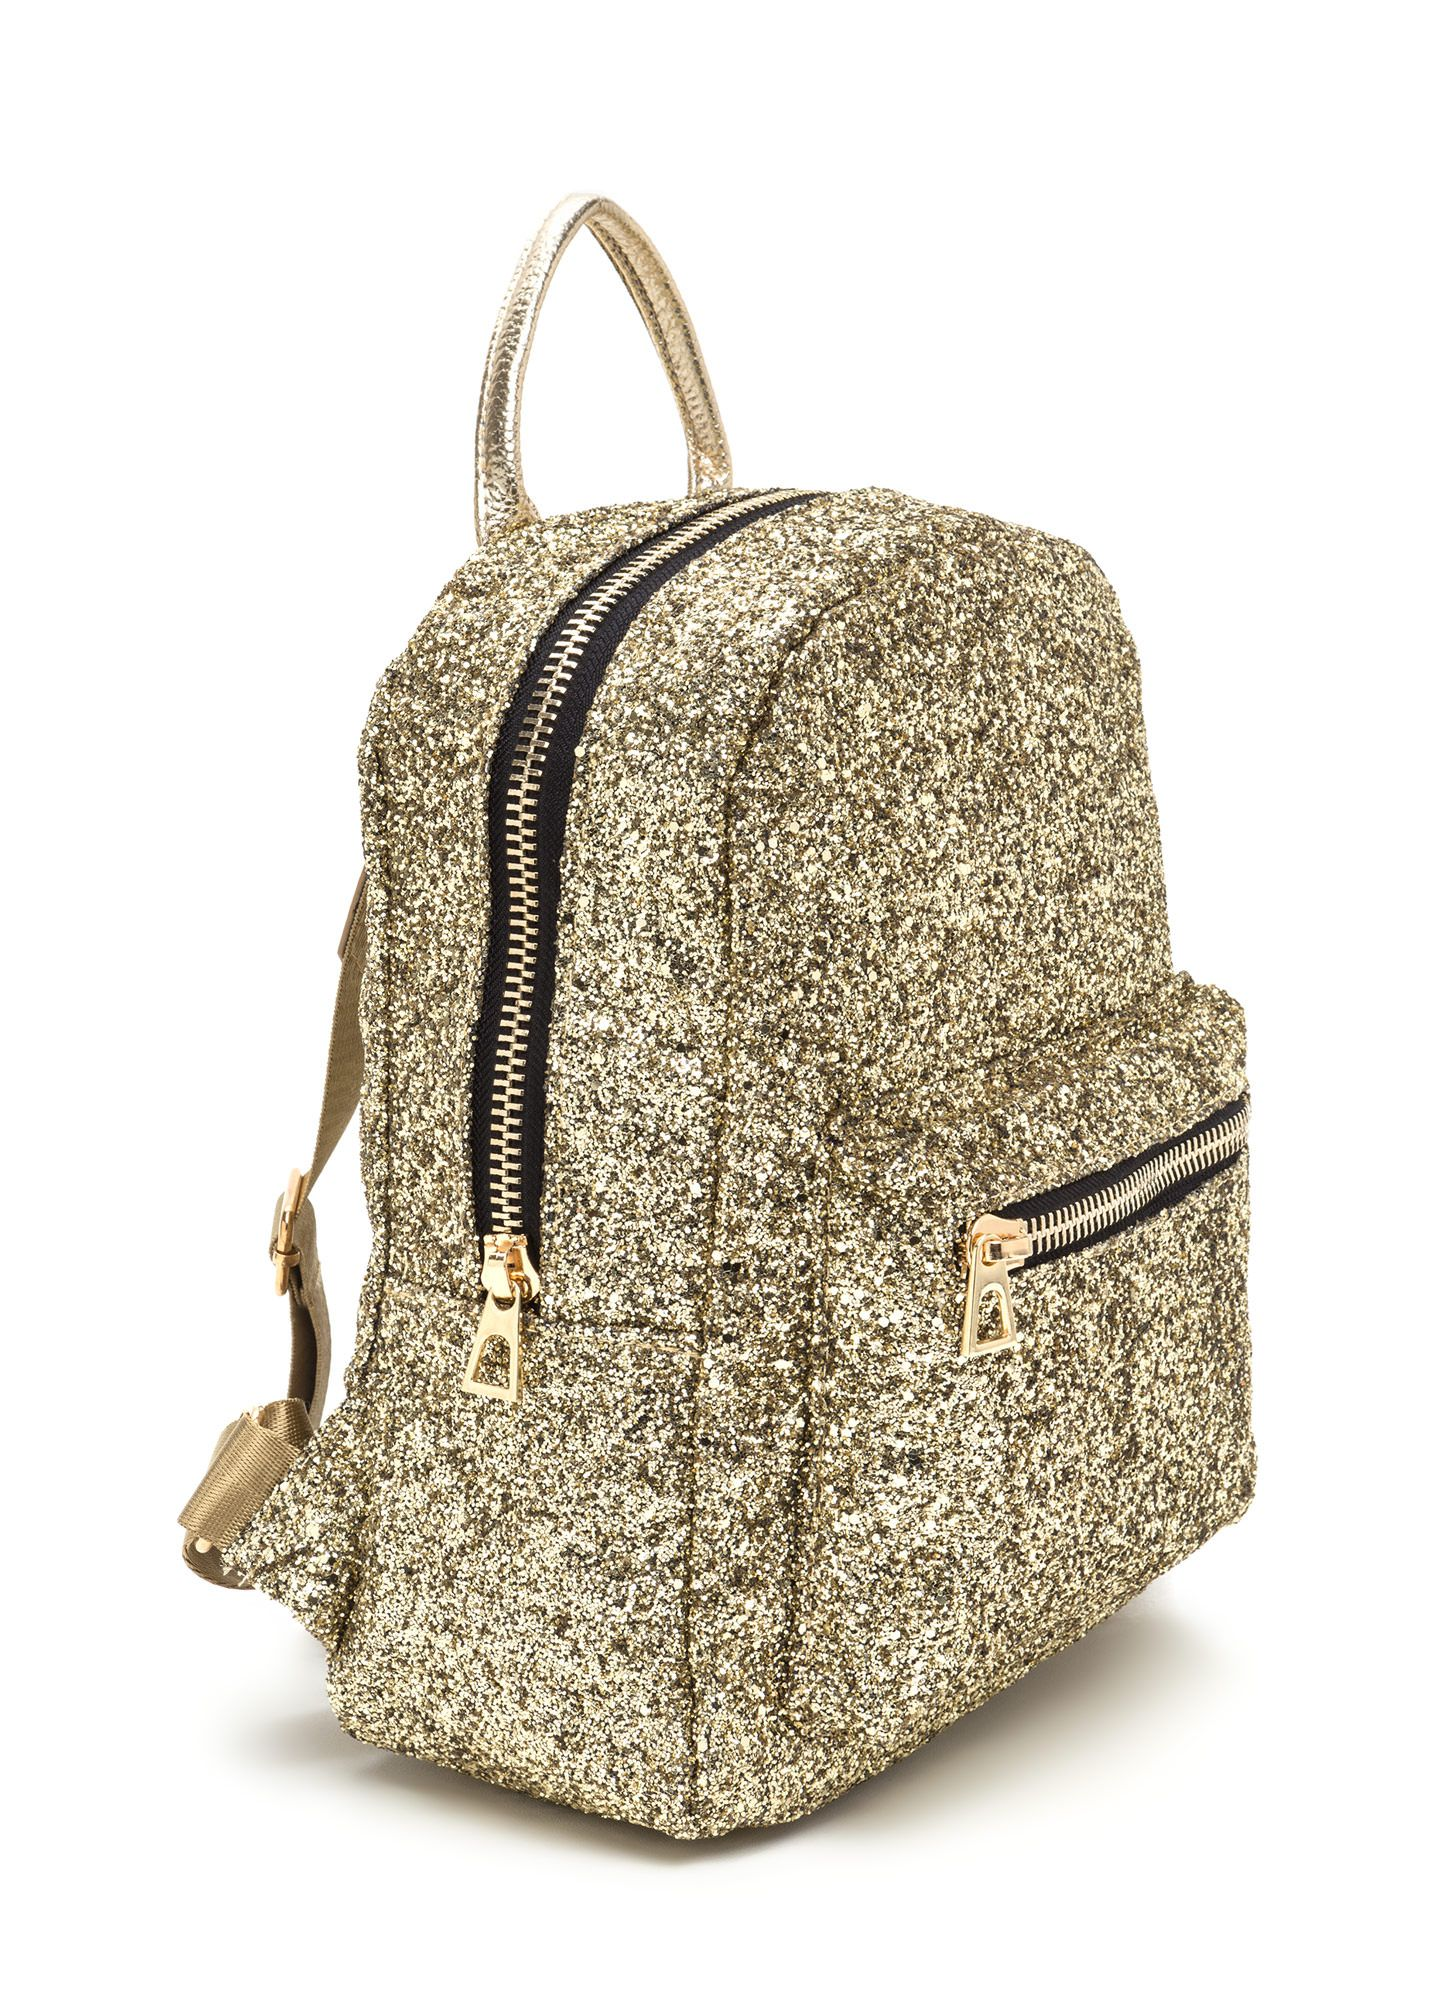 83f31fa4d3 Glitzy Glitter Backpack. Comes in multi color too!